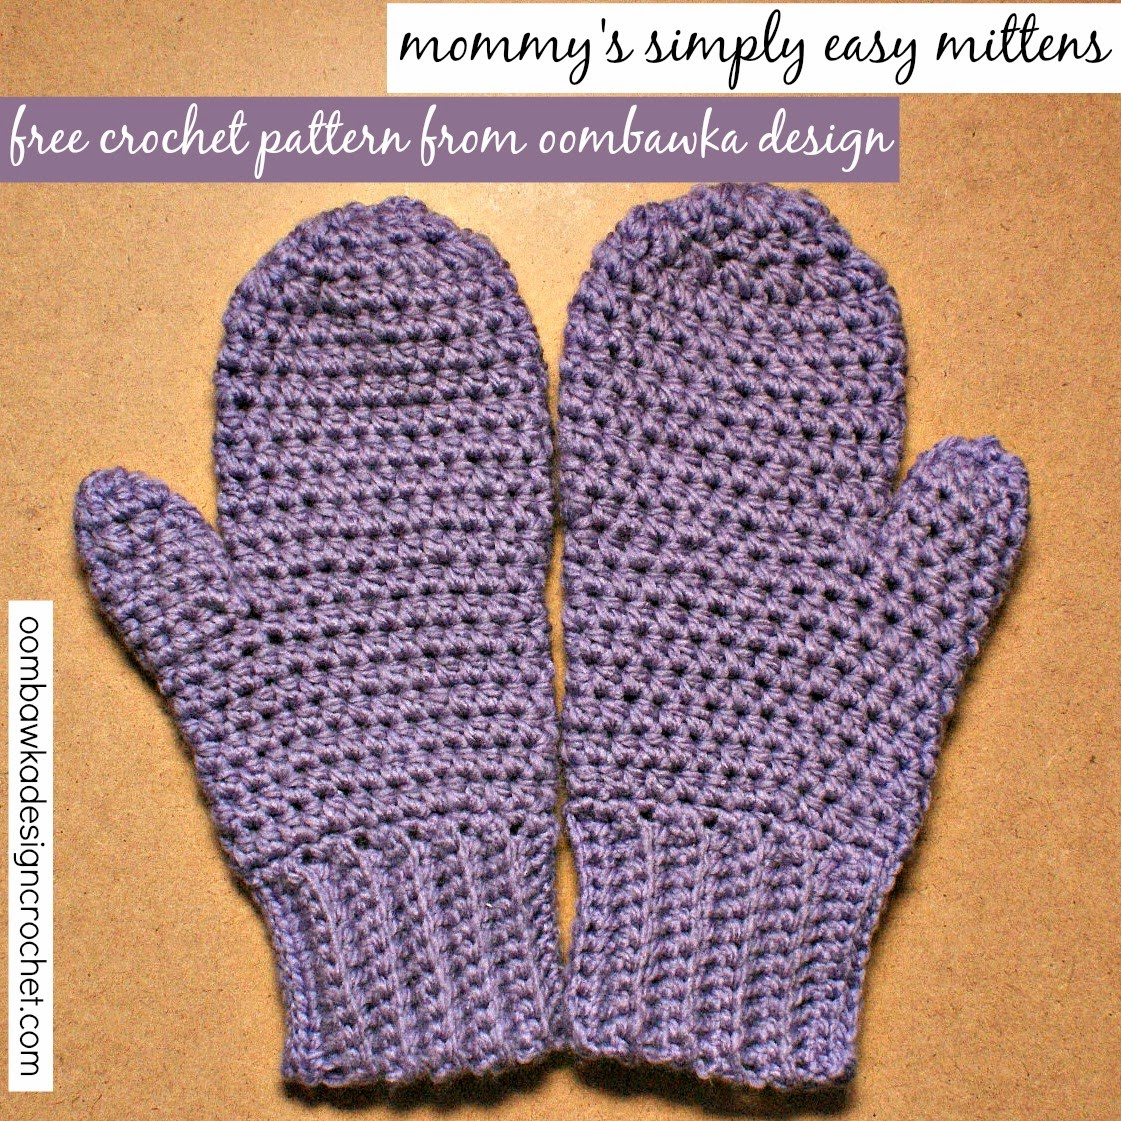 Crochet Free Patterns Mittens : Crochet Patterns Free Easy Mittens images